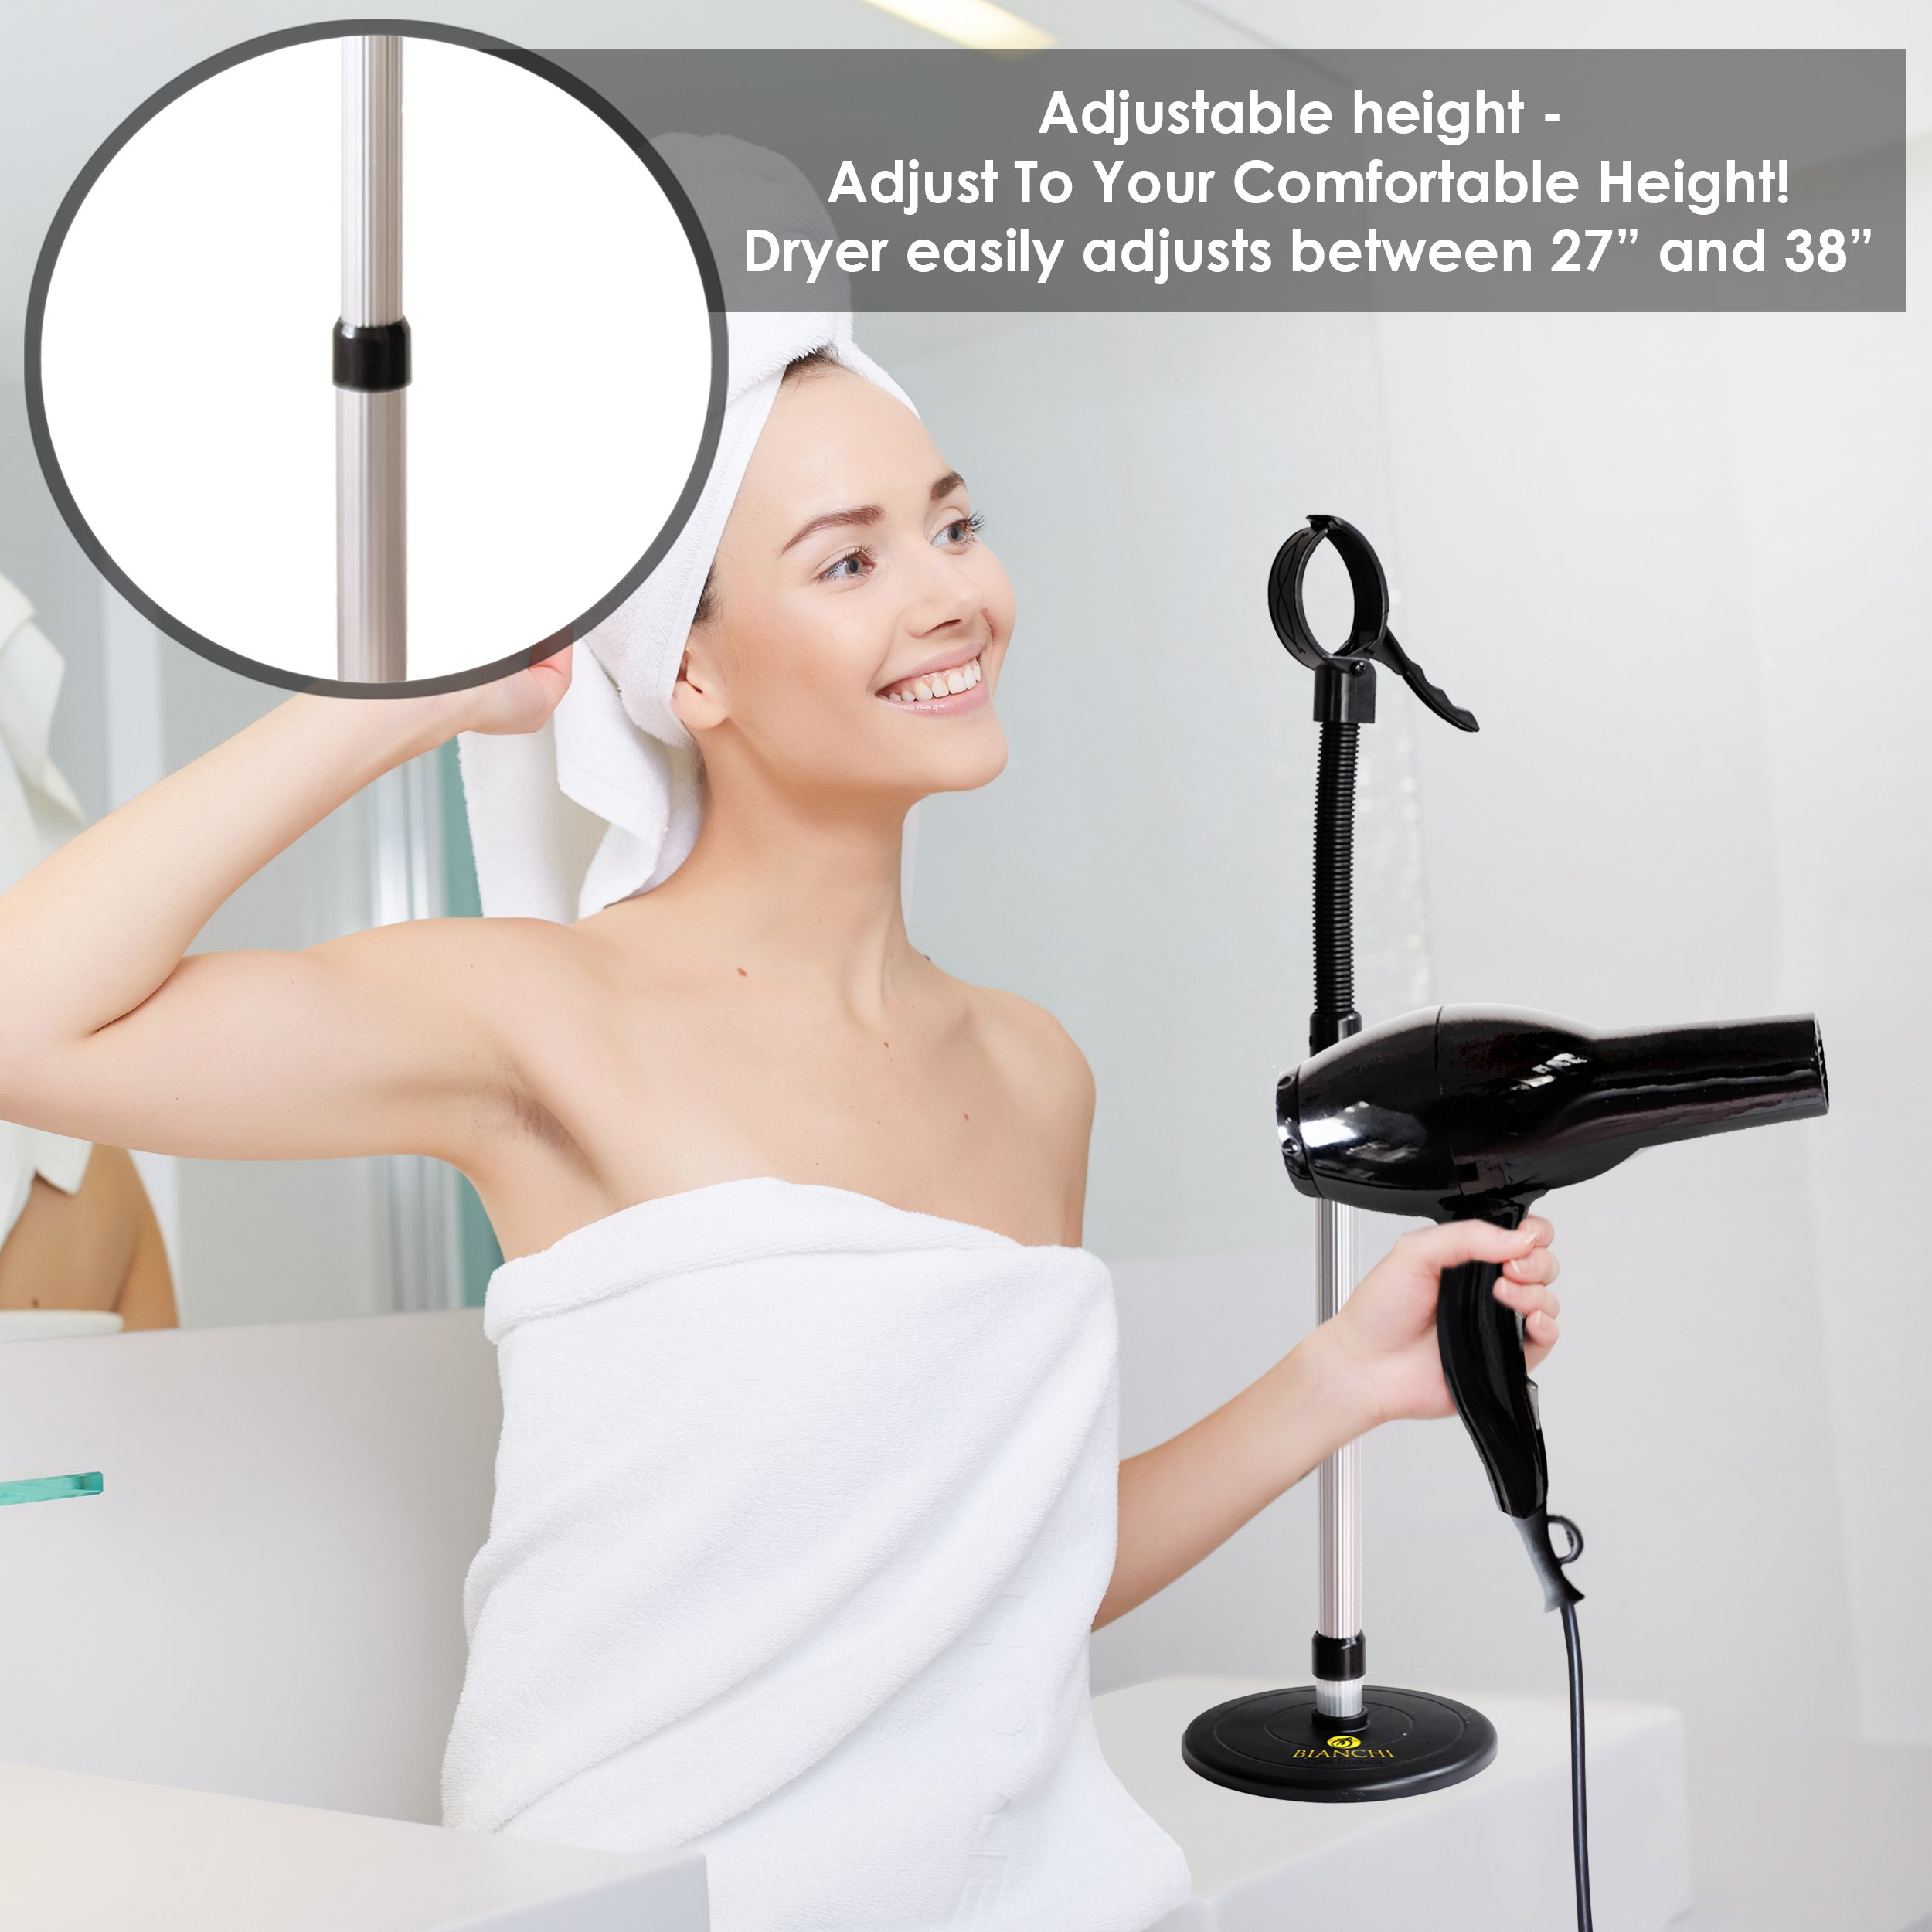 Luxury Hair Dryer Stand With Heavy Non-Tipping Base - Adjustable Height - Hands Free Blow Dryer Holder by Bianchi by Bianchi (Image #2)